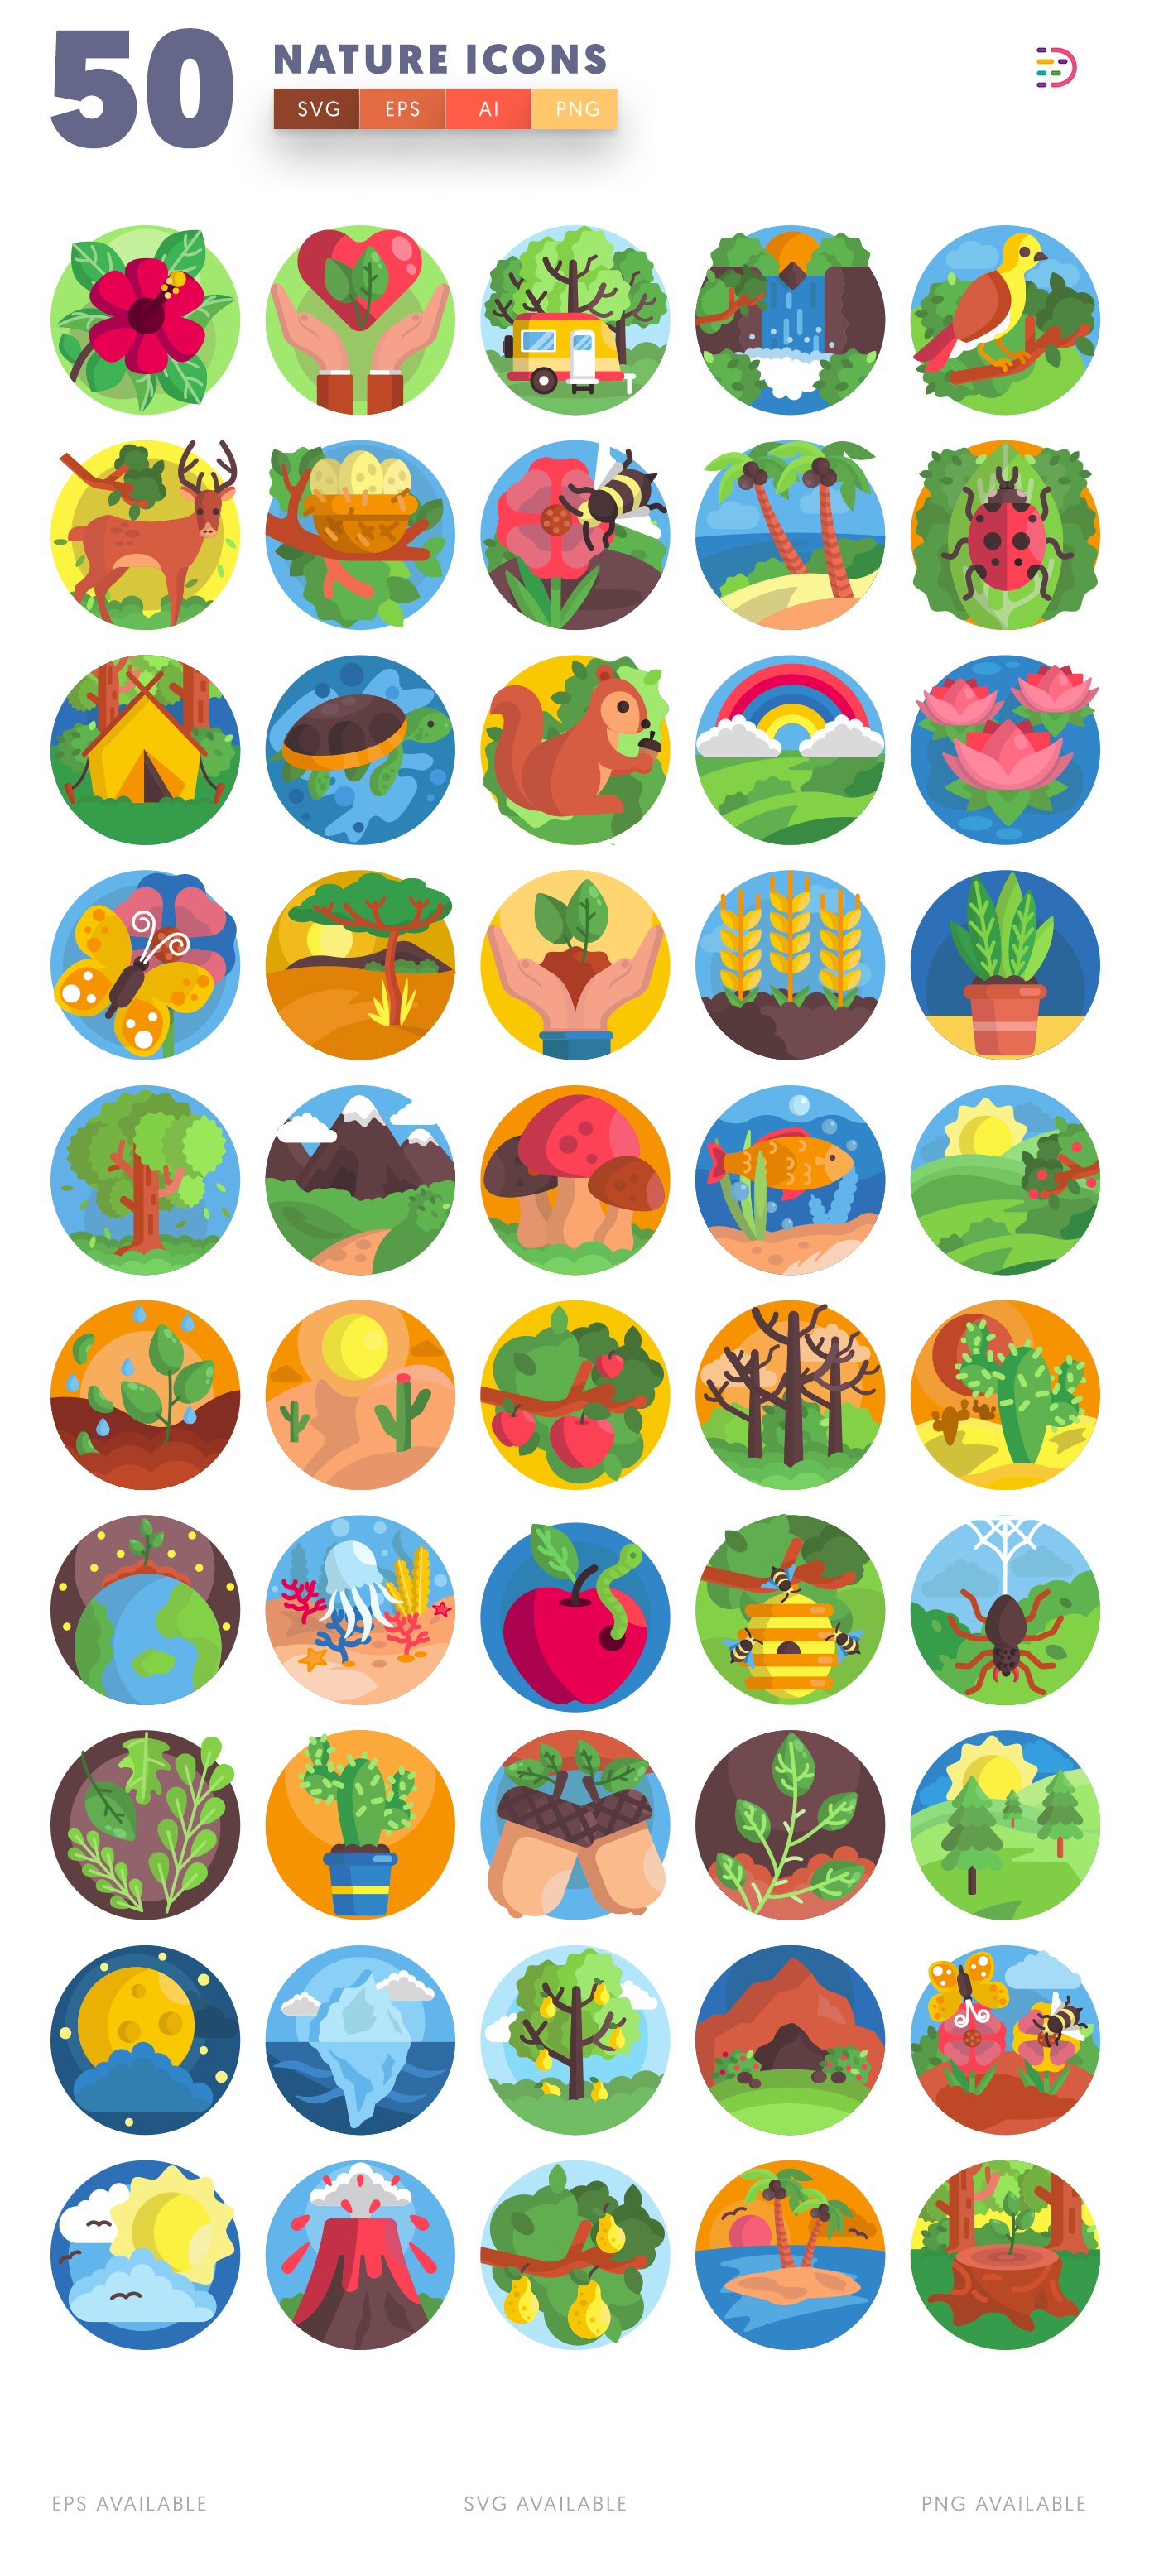 50 Nature Icons list